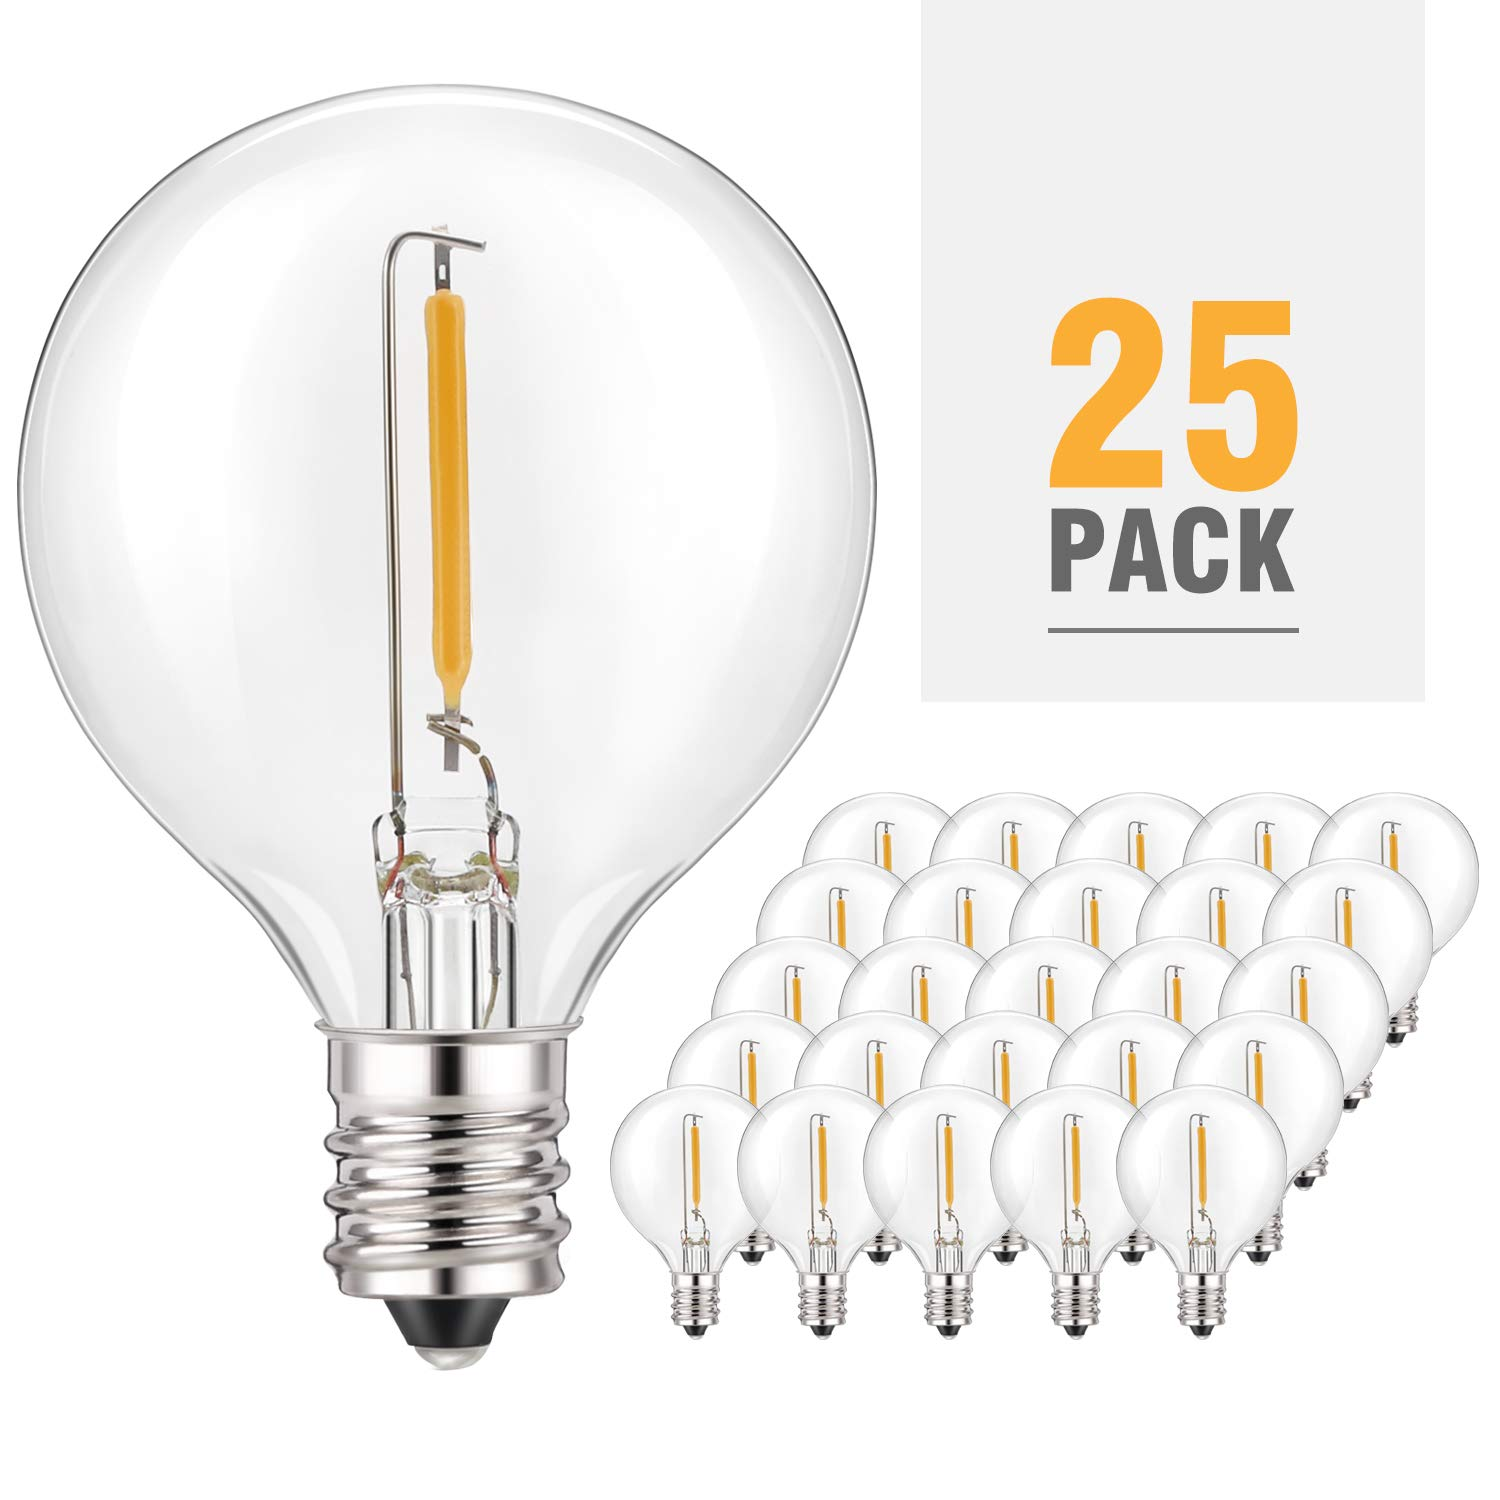 Kohree G40 Led Replacement Bulbs Dimmable Globe Light Bulbs, 1w 2200K  Outdoor for Patio G40 Edison Globe String Lights, E12 Base for Party